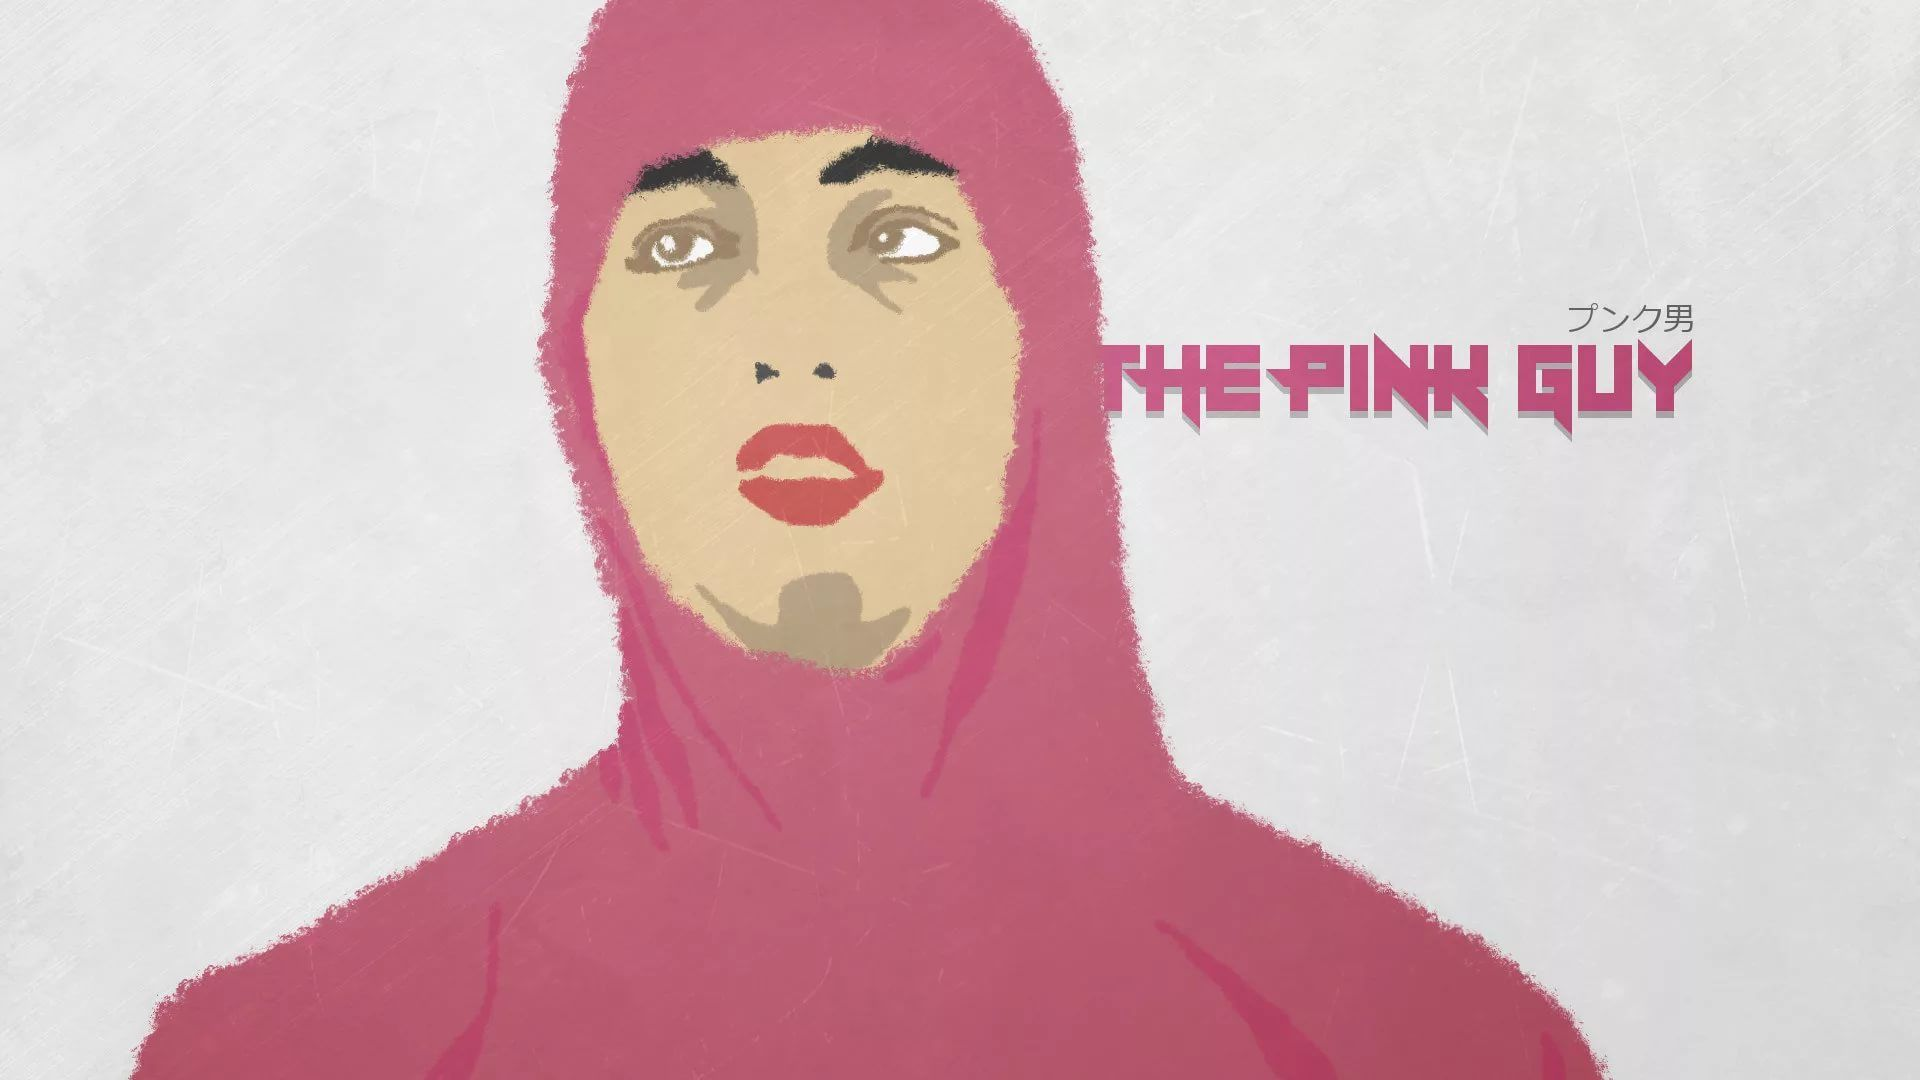 Pink Guy pc wallpaper